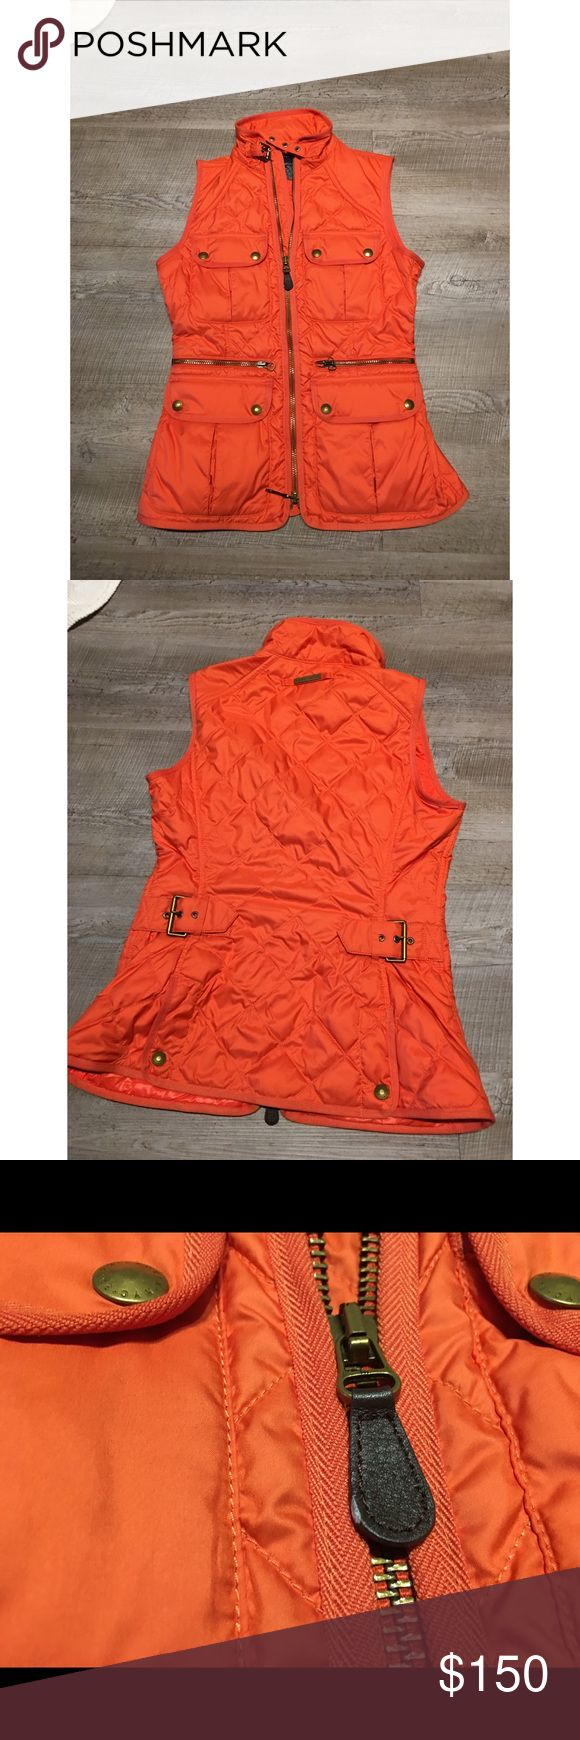 Ralph Lauren sport Quilted equestrian vest jacket ✨(❁´◡`❁) ωḙℓḉ✺Պḙ (❁´◡`❁)✨          🦋Description:        •Beautiful bright pumpkin orange Quilted fabric     •4 pockets on front     •Zip up     •Adorable buckles      •Very comfy, sexy fit.        ✨          🦋Brand: Ralph Lauren           🦋Size: Small (women's)          🦋Condition: Excellent preowned shape. No holes or stains. Worn once           (please refer to all photos Don't hesitate to ask ANY and ALL question before Bidding/Buying)…